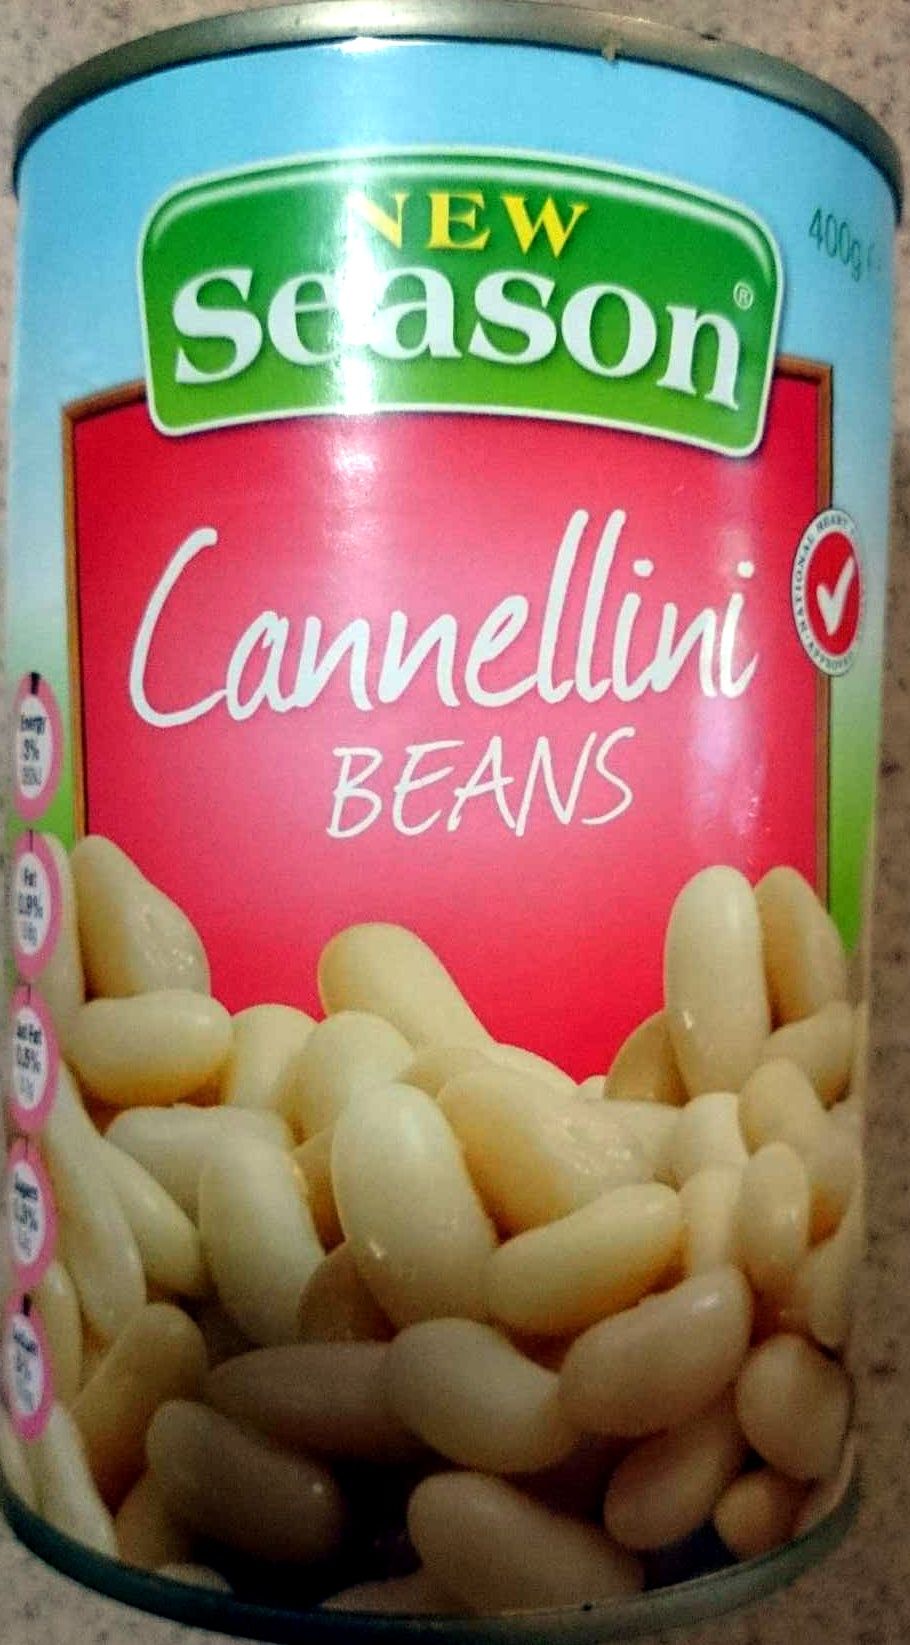 Cannellini Beans - Product